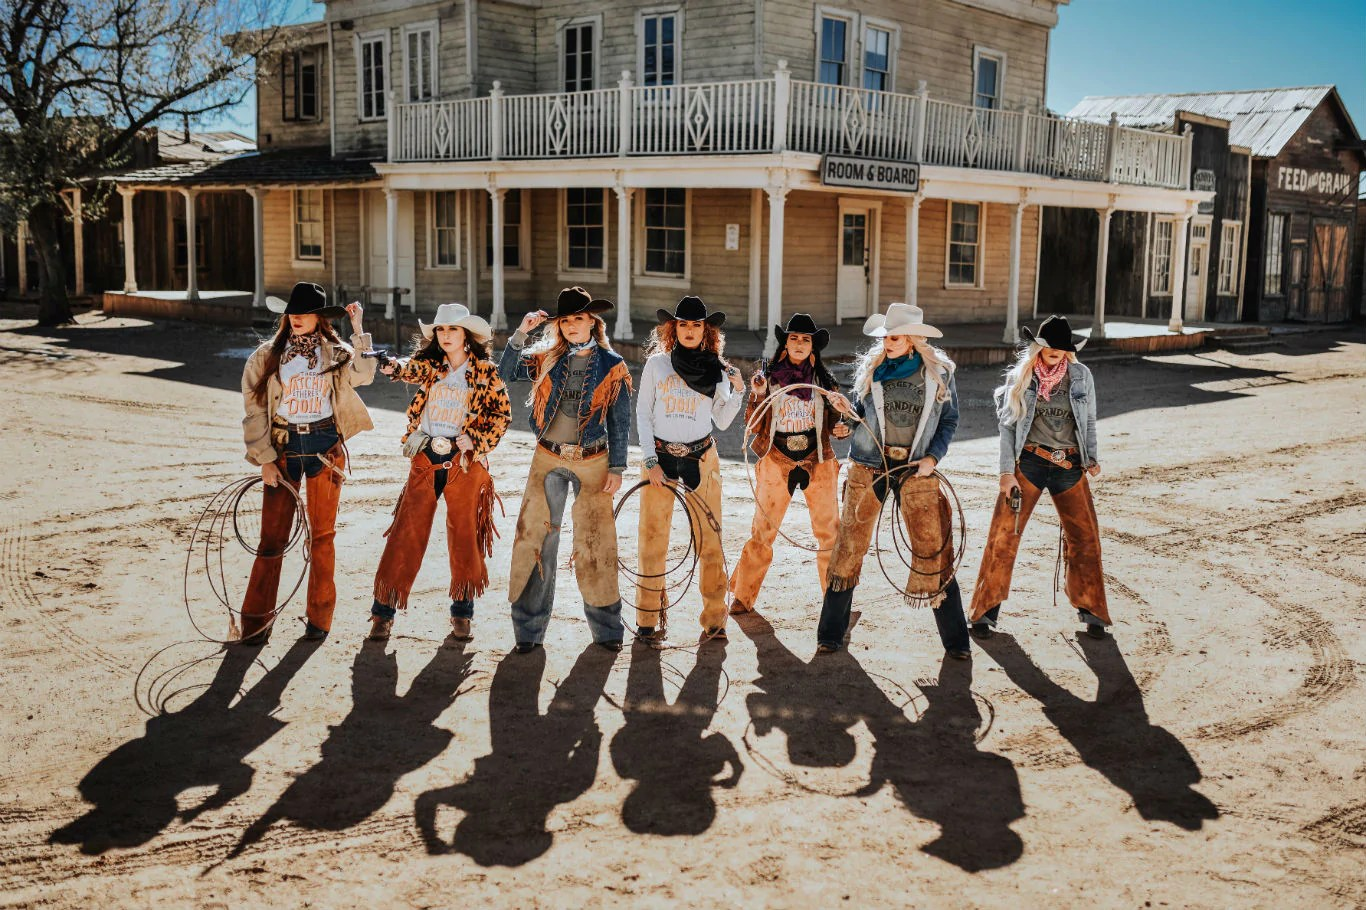 Wholesale Western Wear Distributors The Coyote Cowgirl Western Apparel